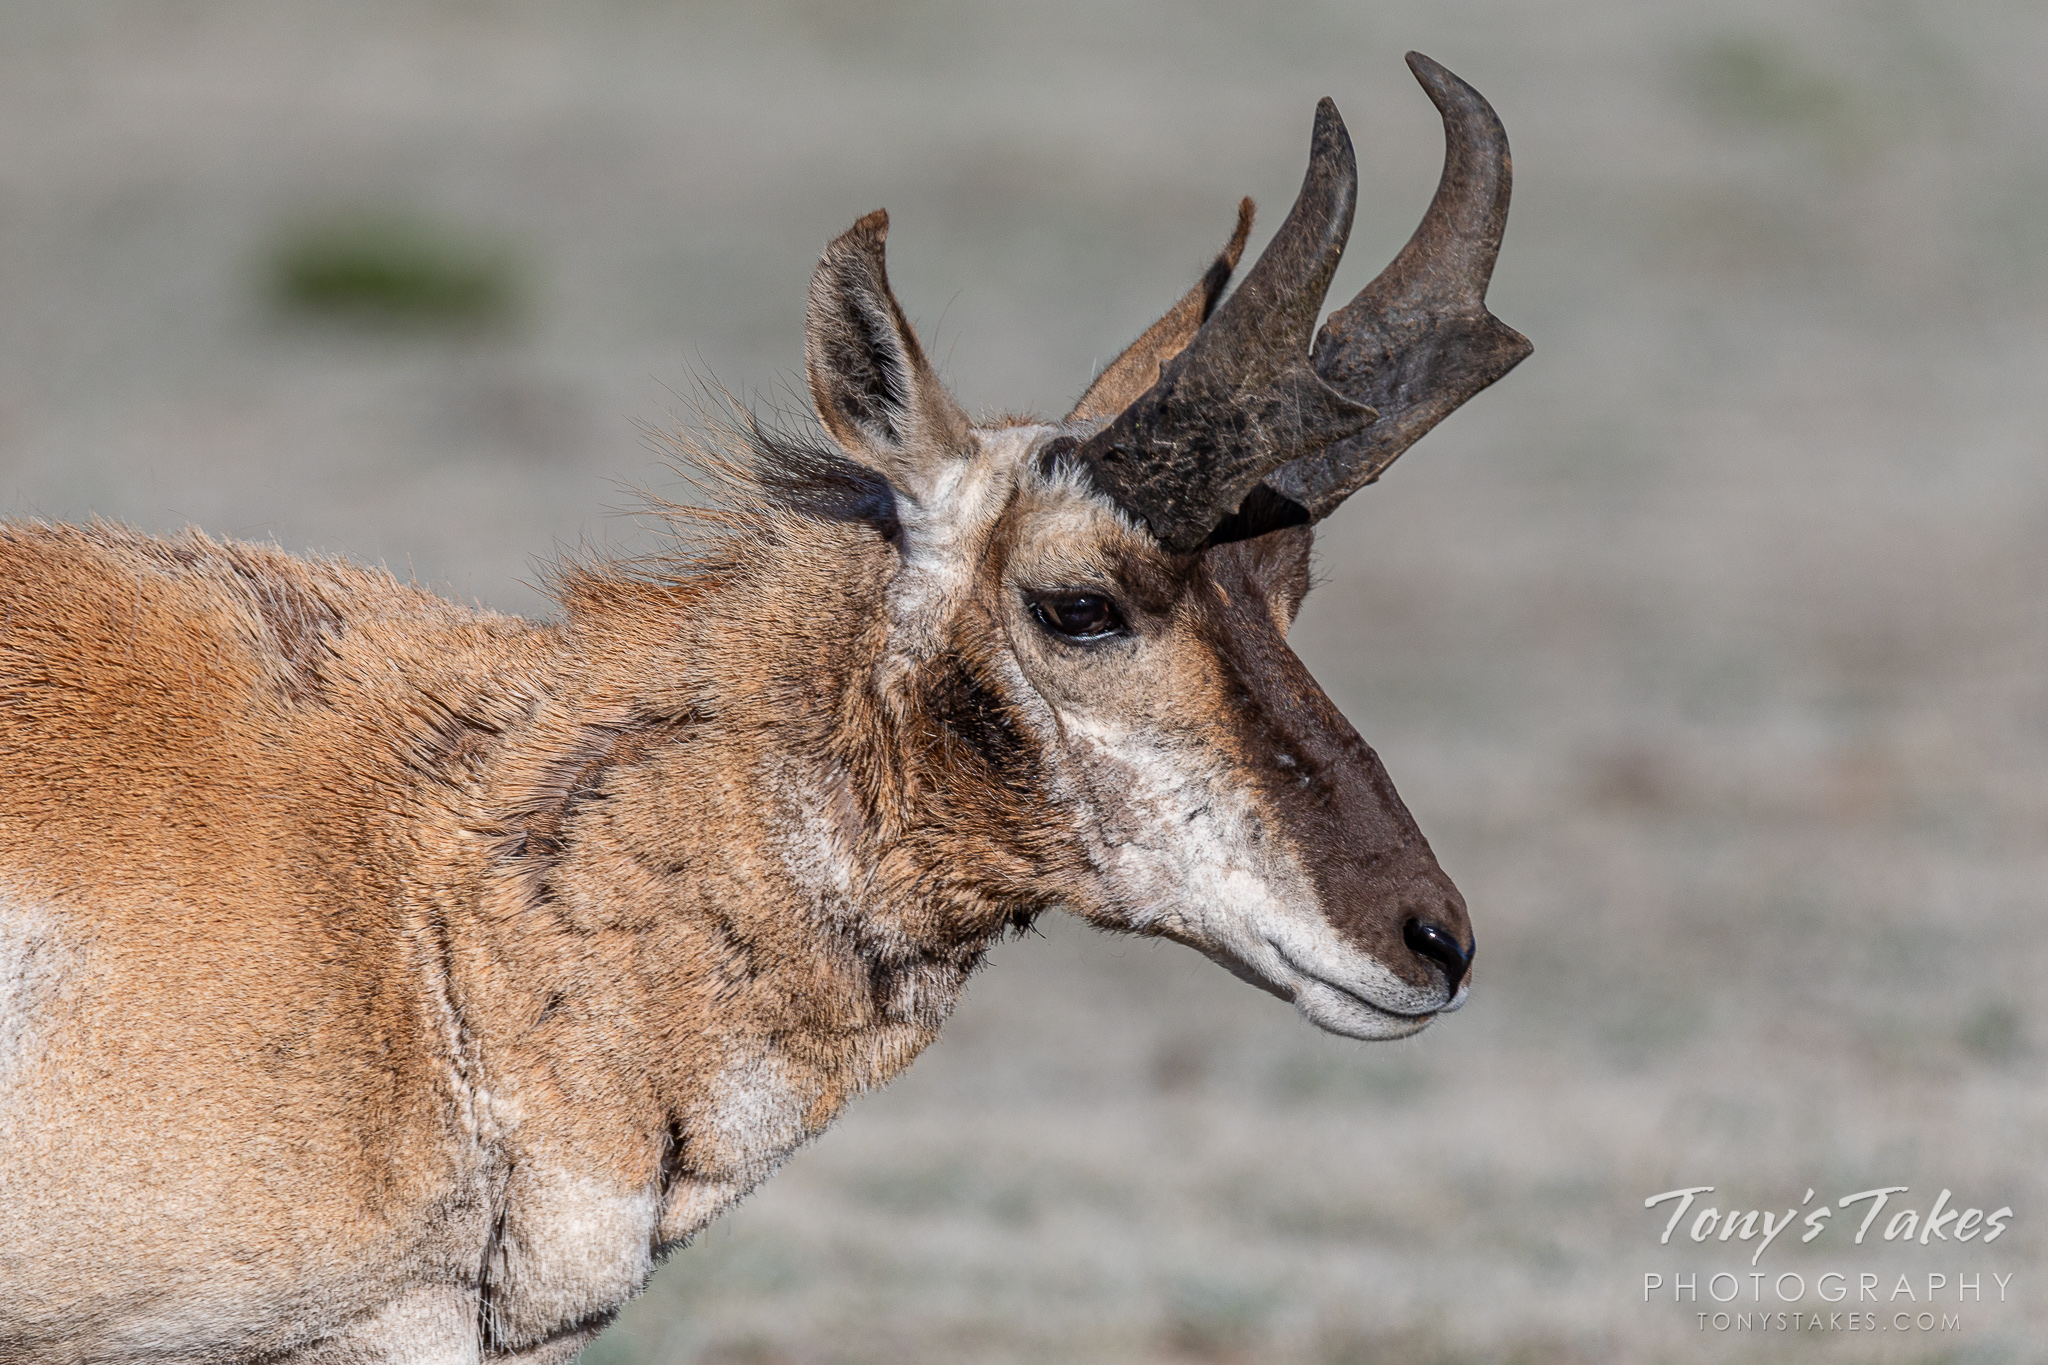 A pronghorn buck gets up close and personal at Eleven Mile State Park in Colorado. (© Tony's Takes)